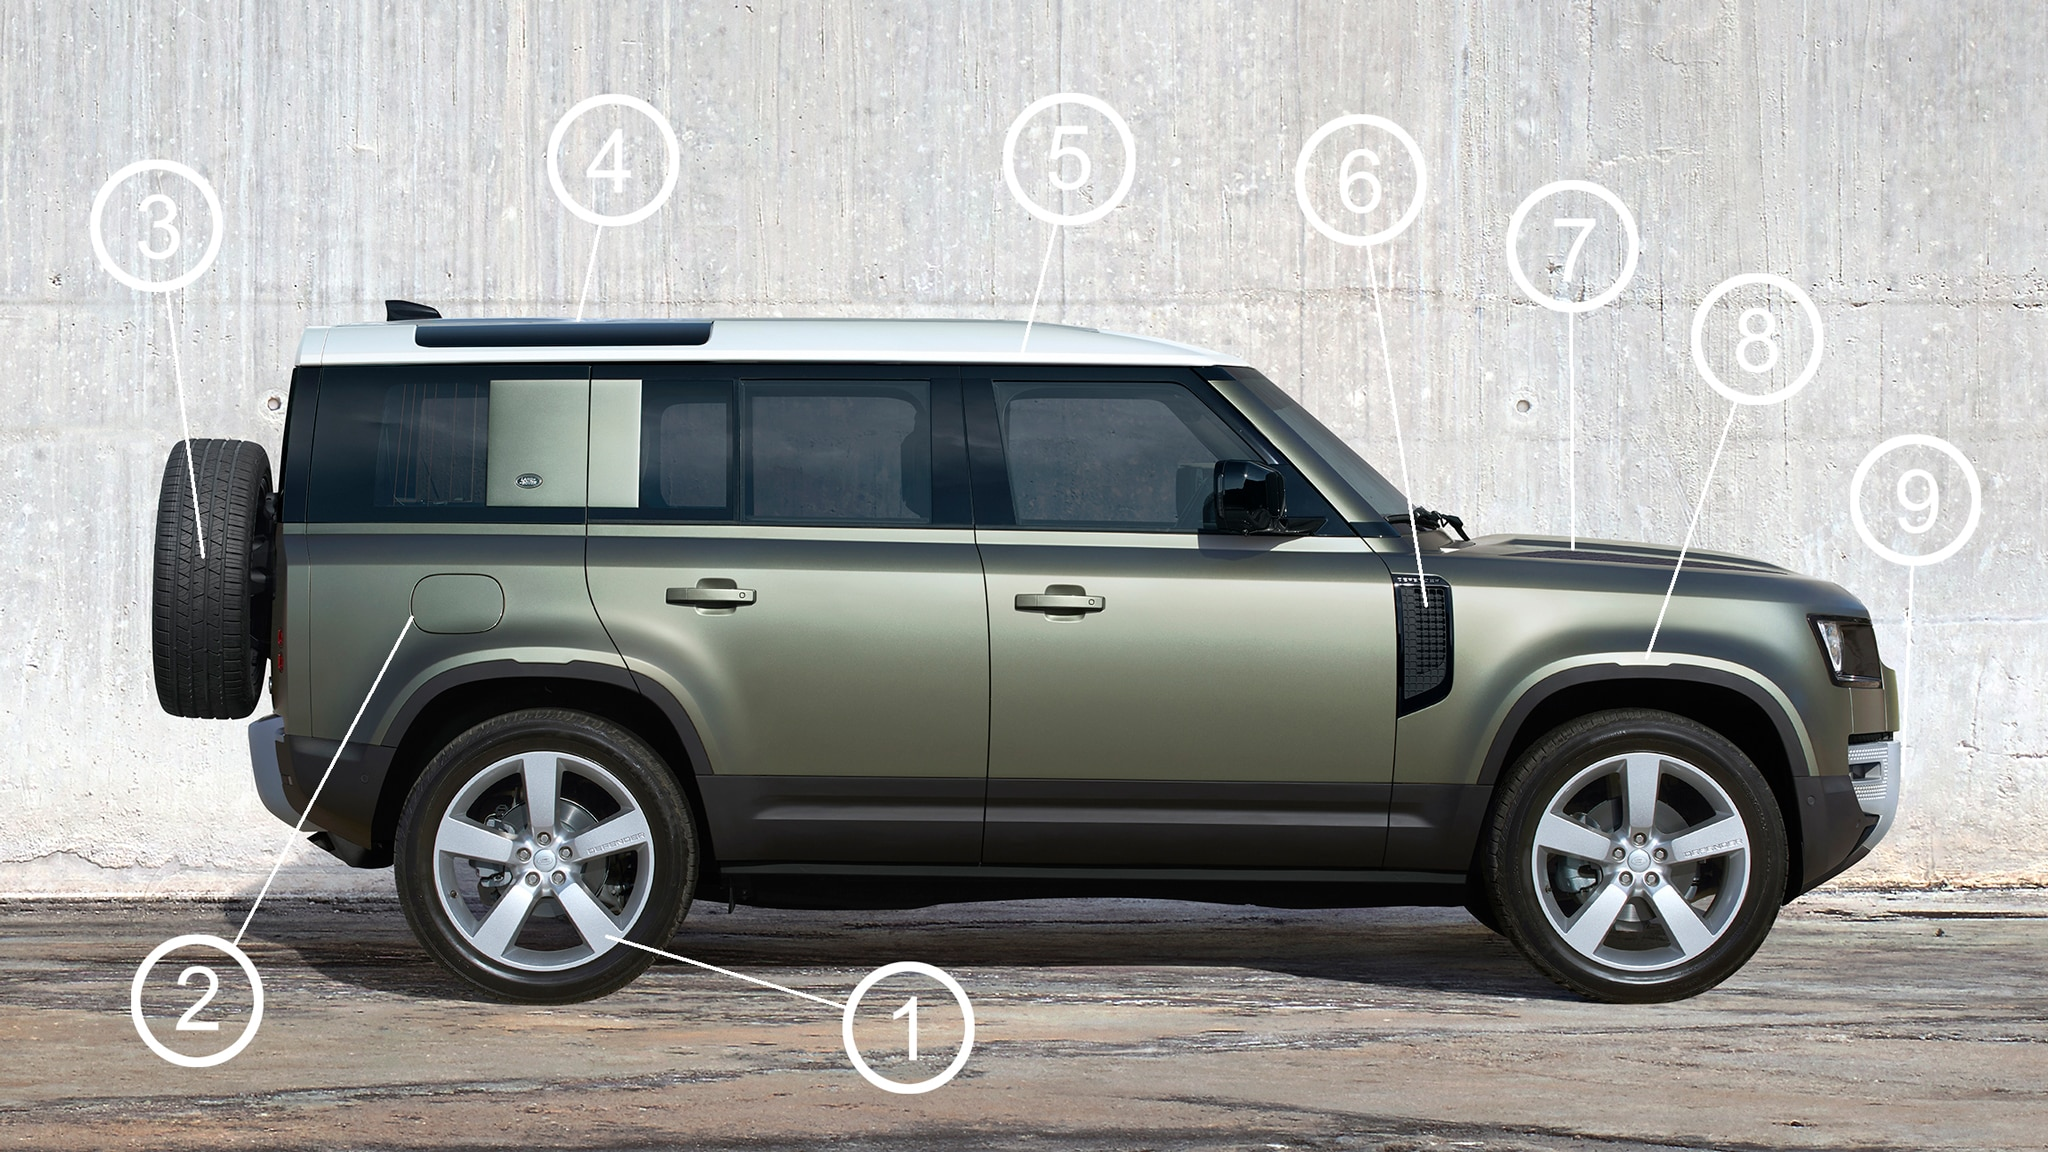 New Land Rover Defender Design Analysis: Our Expert Weighs In